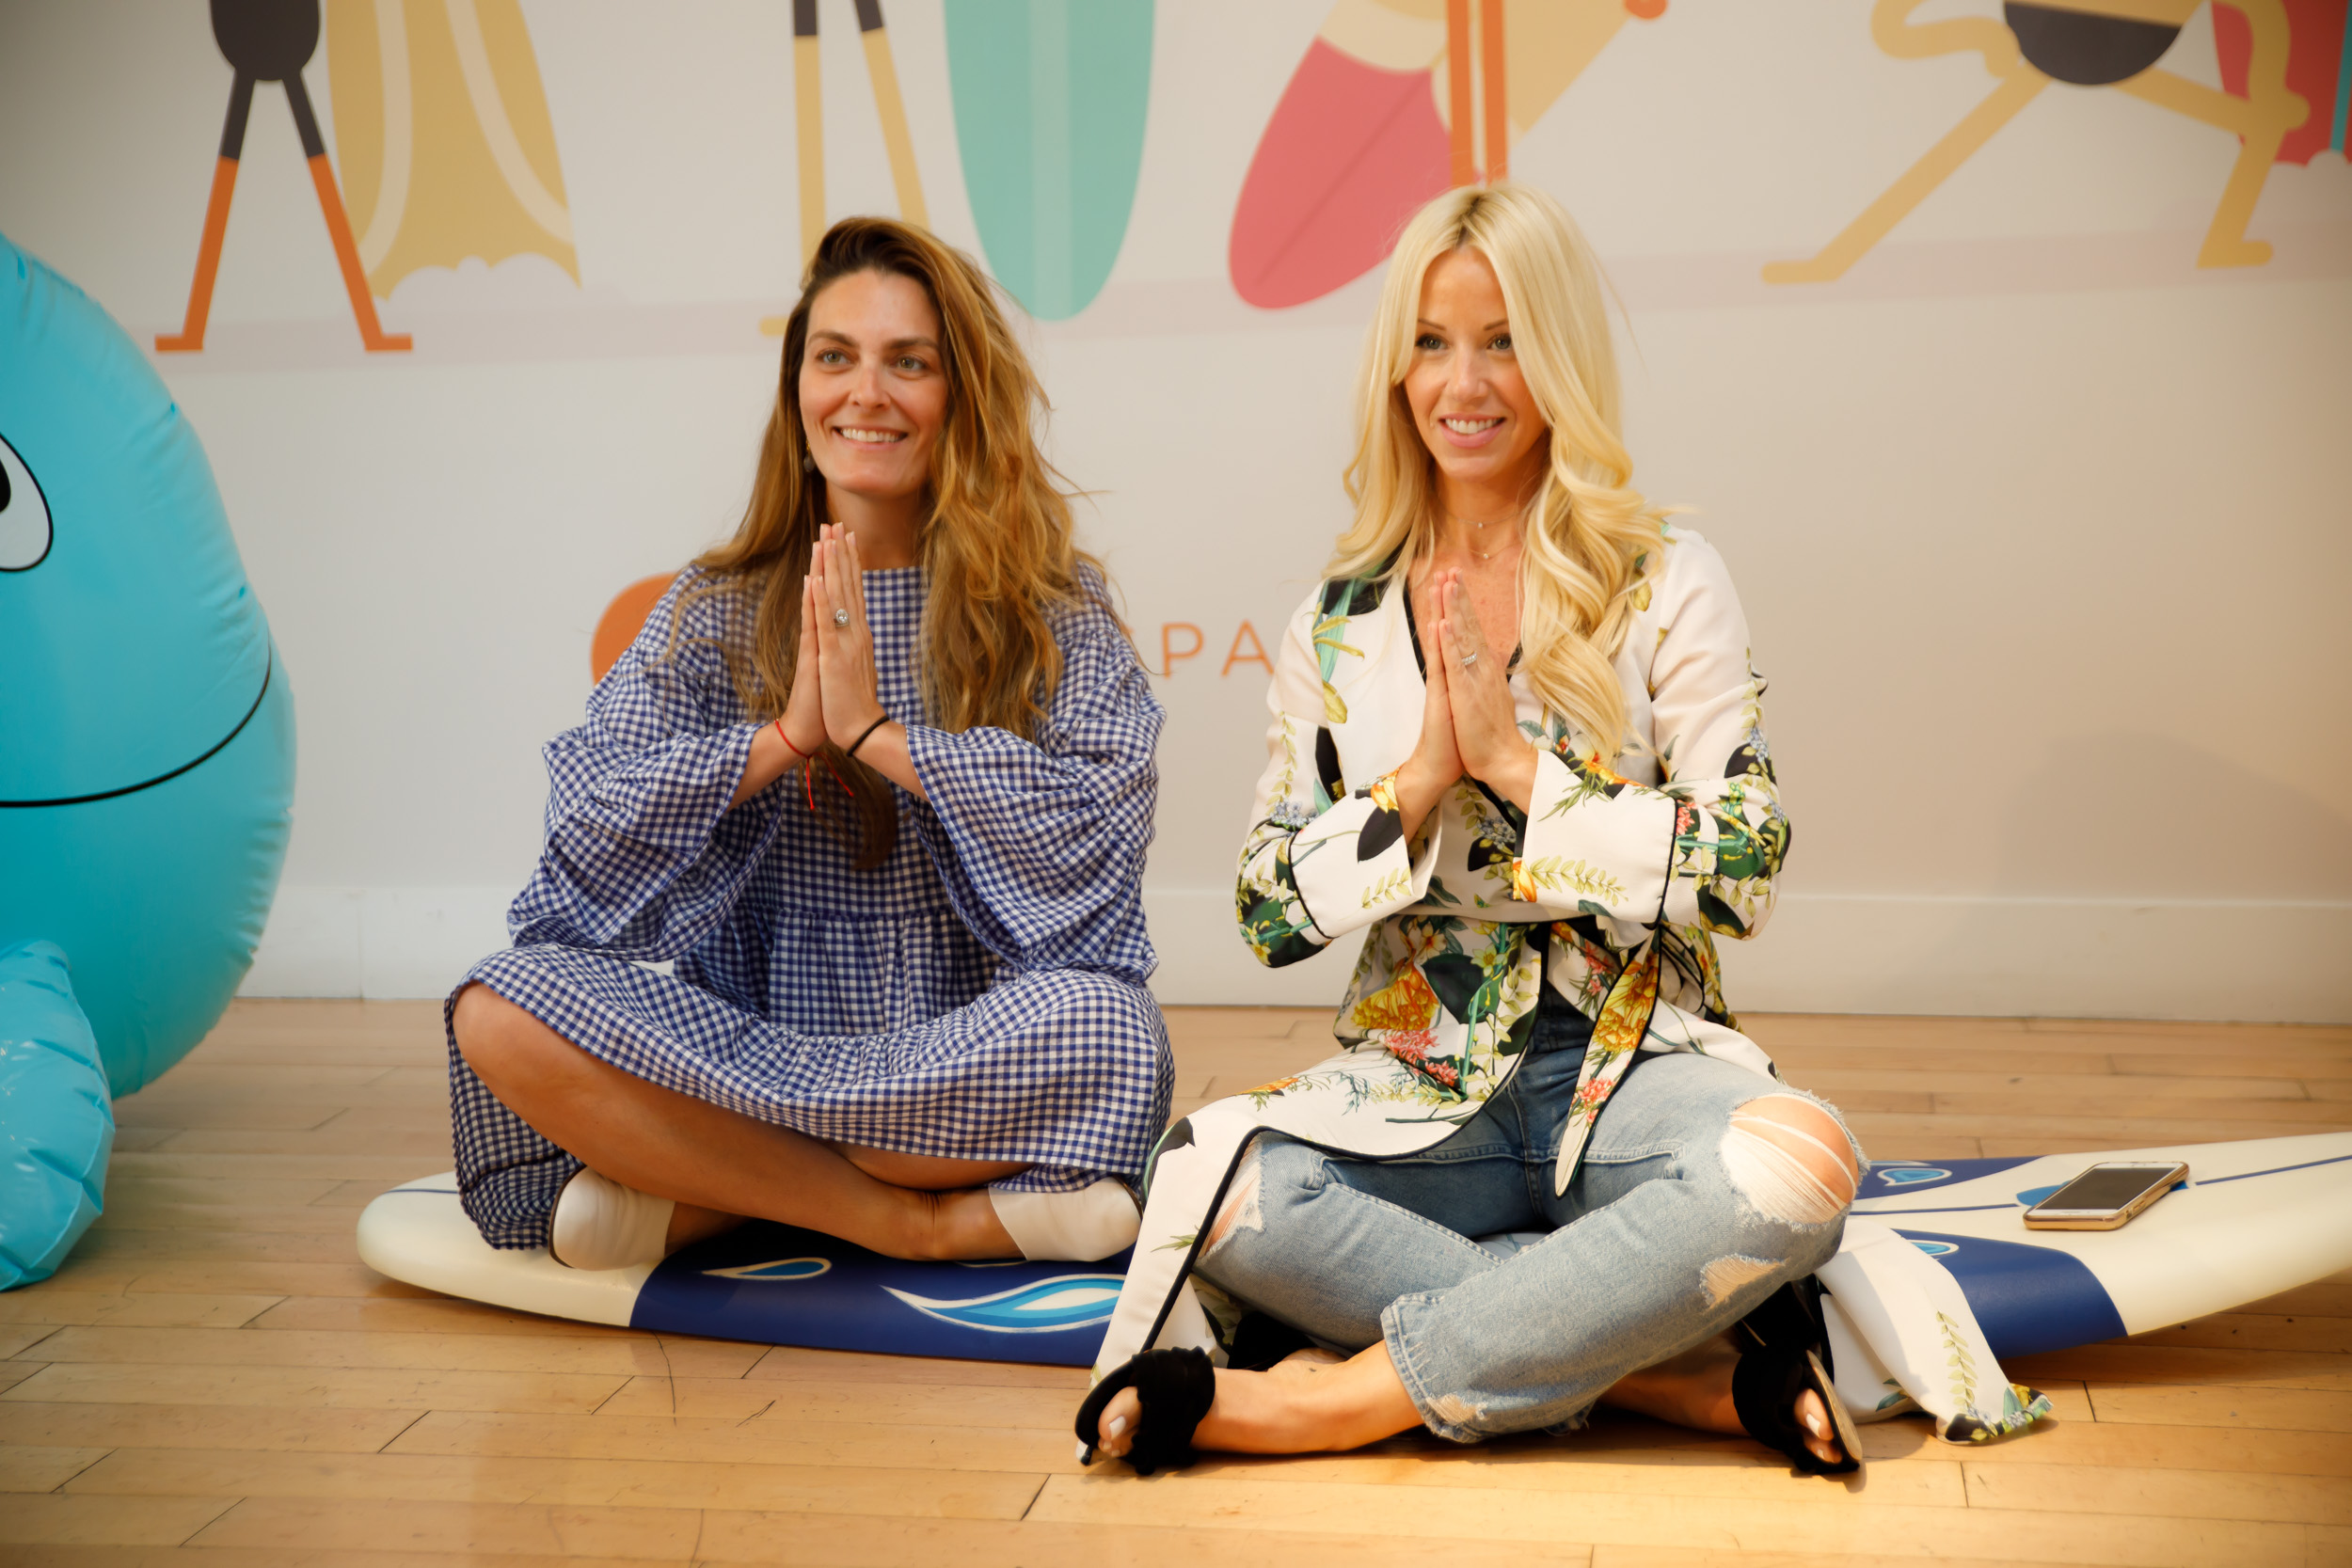 Brianne from Stroller in the City and me having fun being zen!